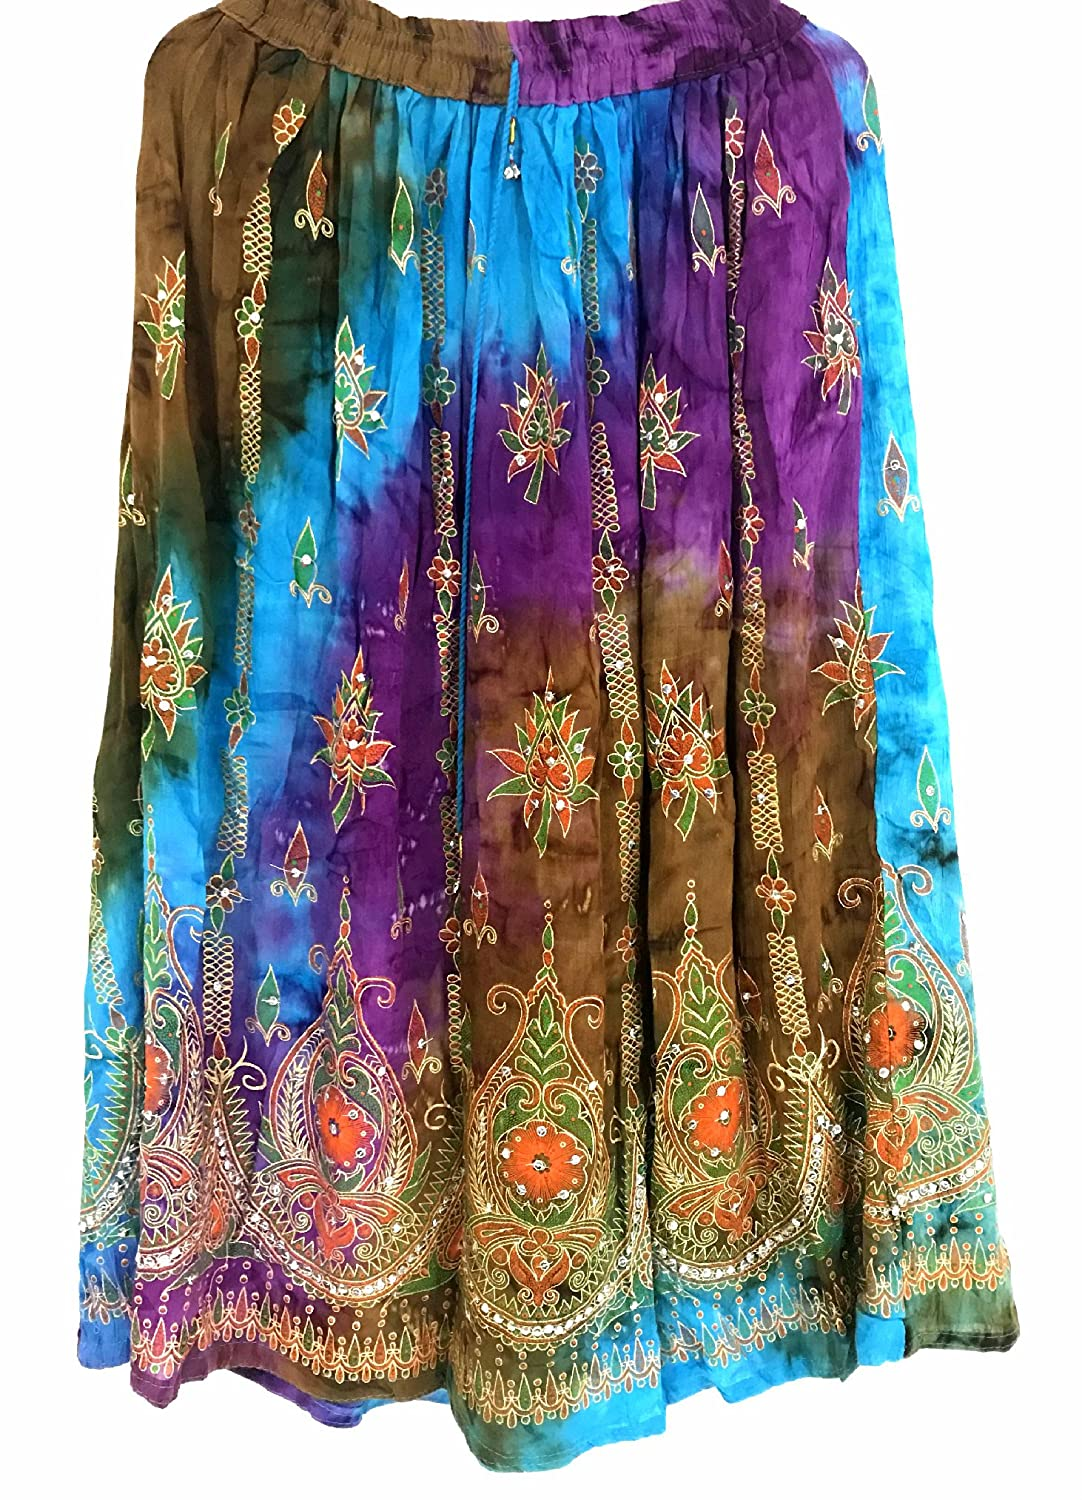 Dancers World Ltd UK Seller Coloured Womans Boho Hippie Gypsy Women Indian Sequin Summer Summer Dress Maxi Belly Dance Skirt